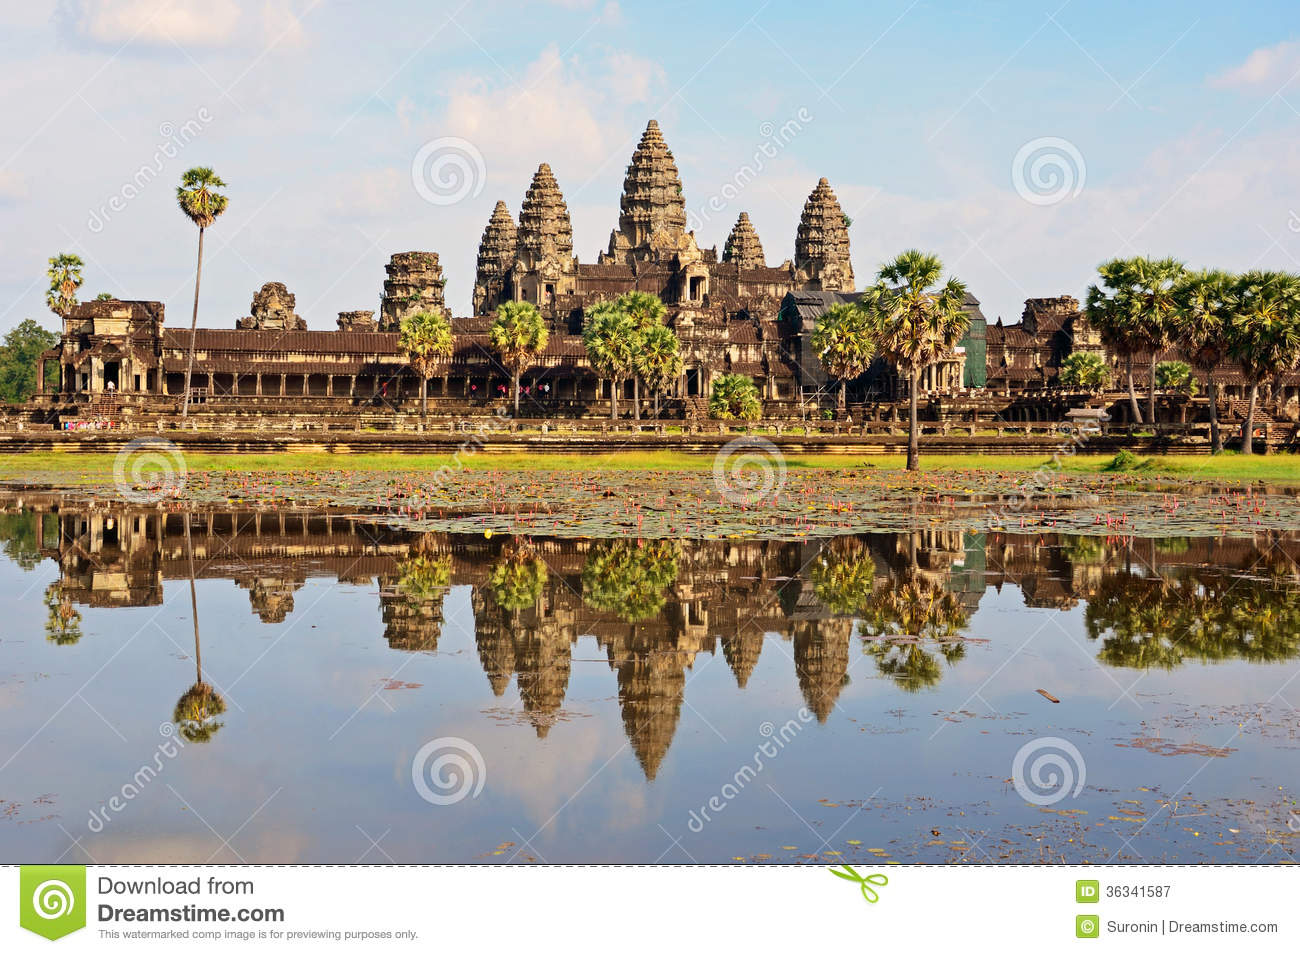 Writing about siem reap province